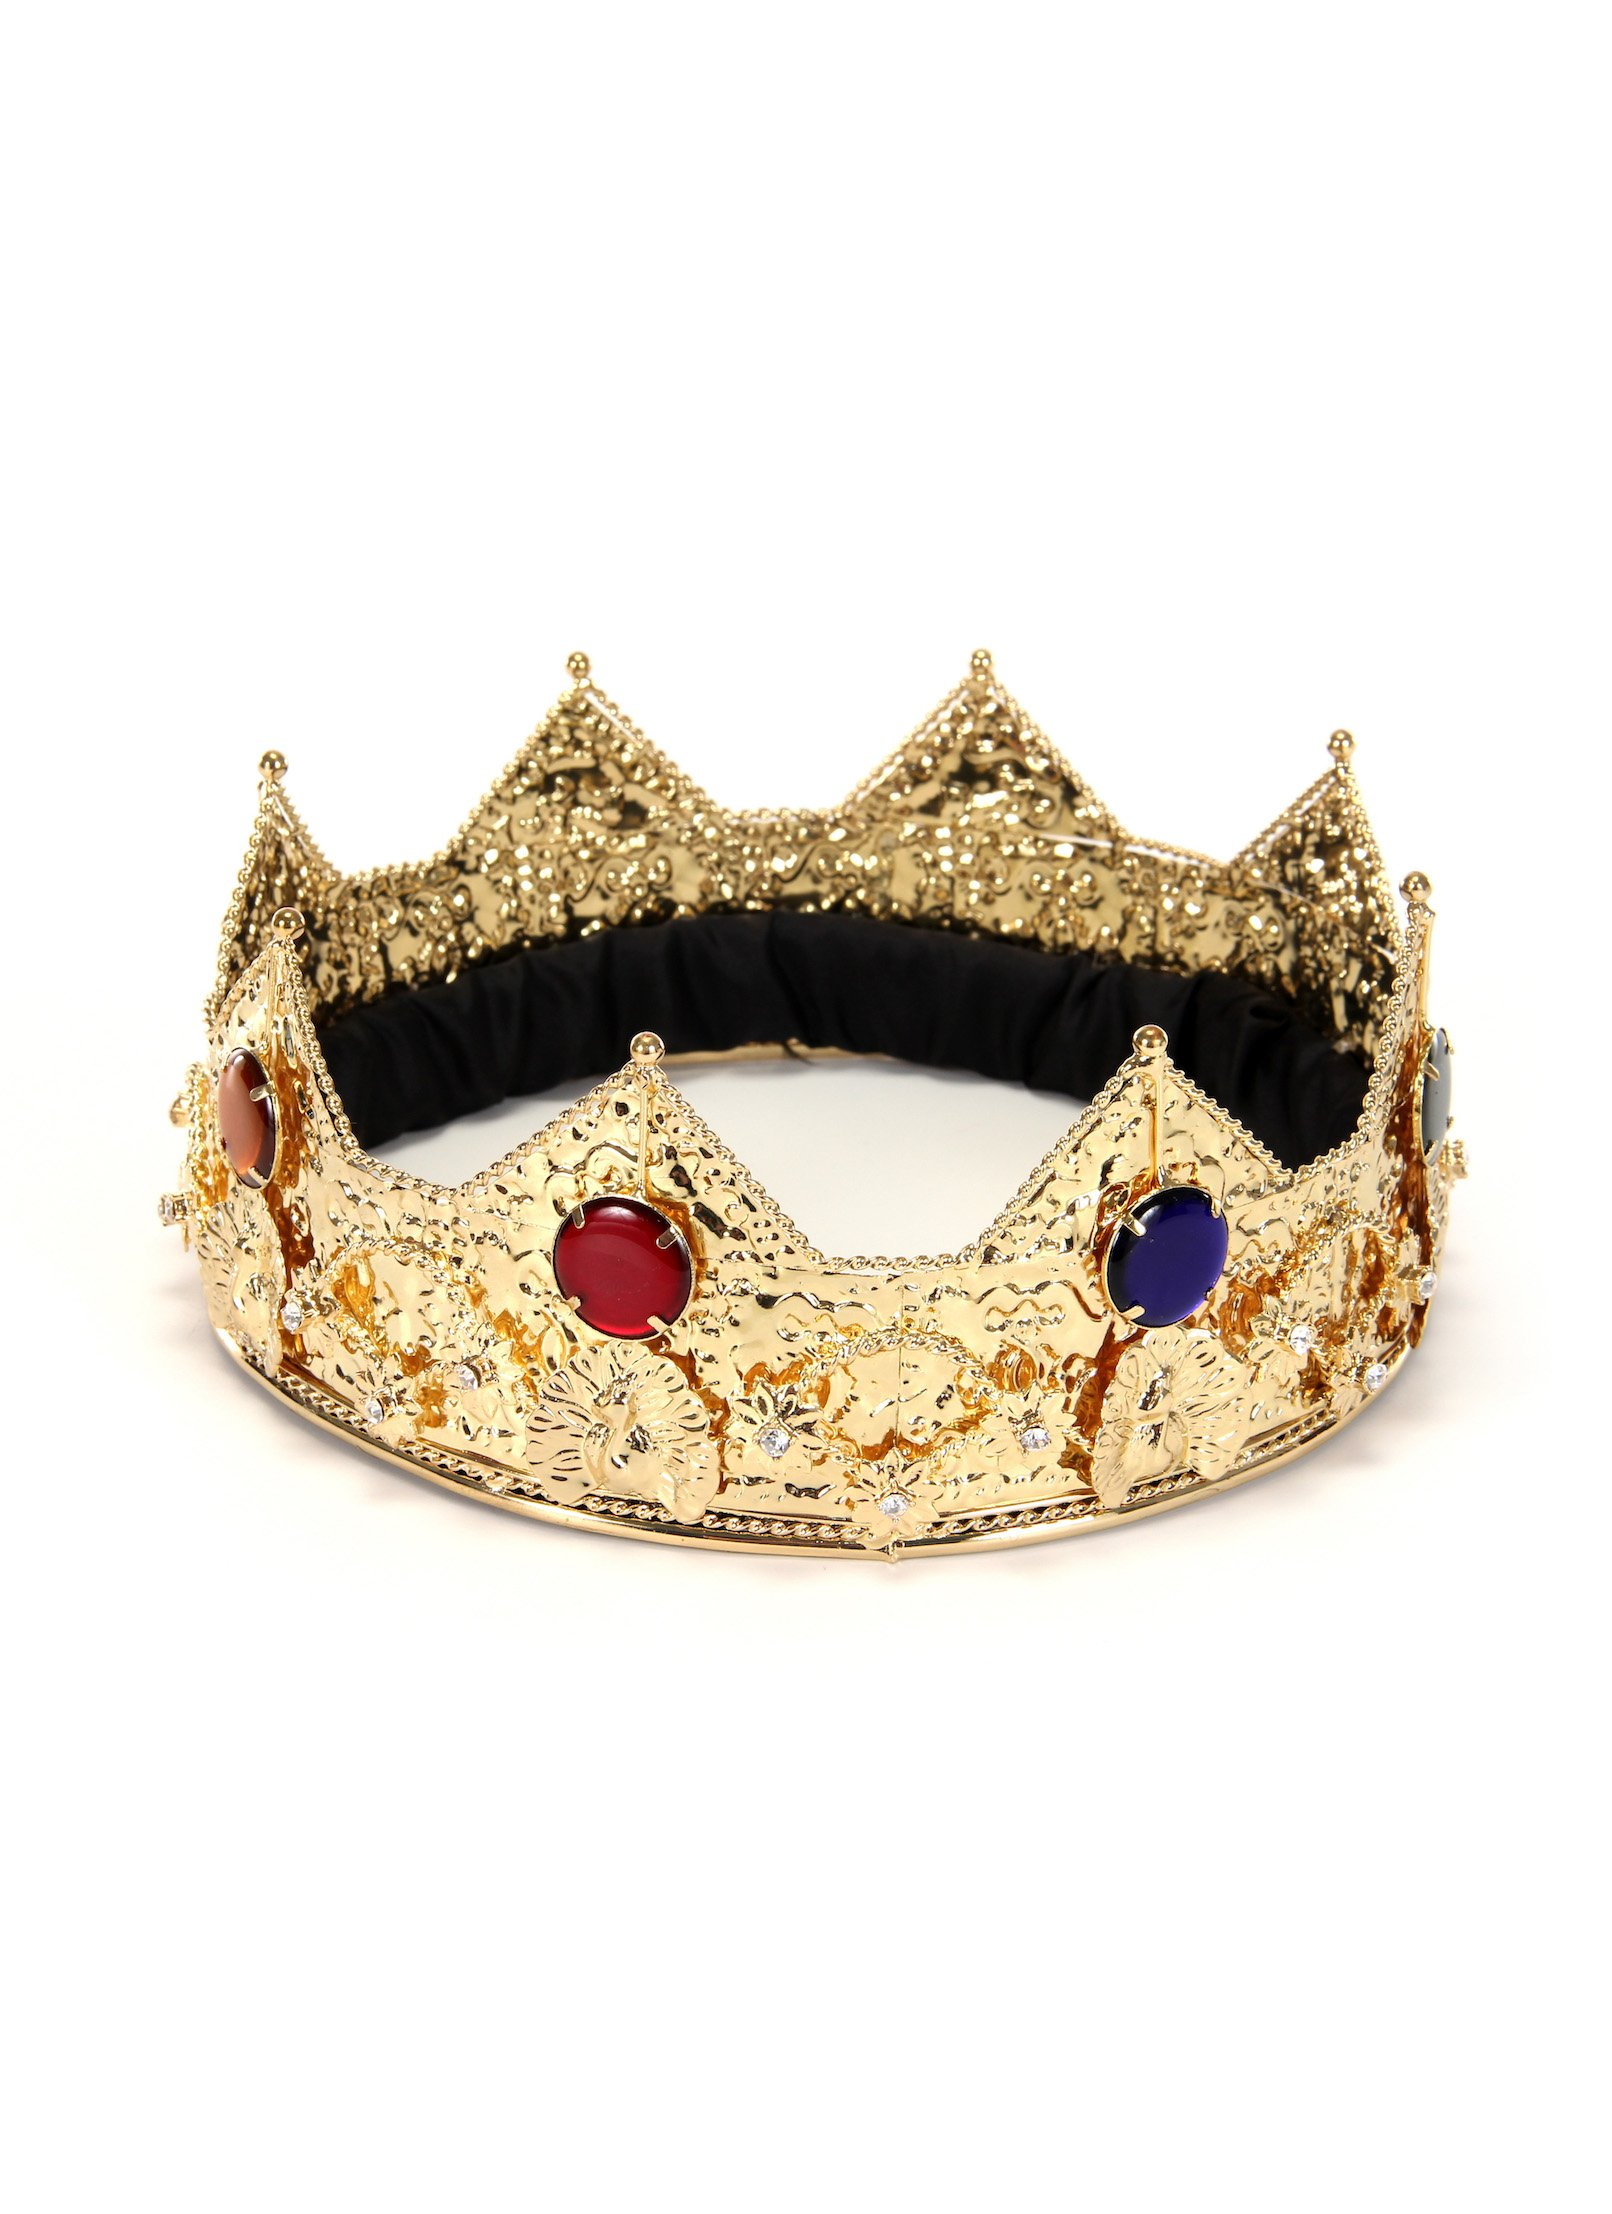 Regal King Crown Gold with jewels for Men and Women by elope